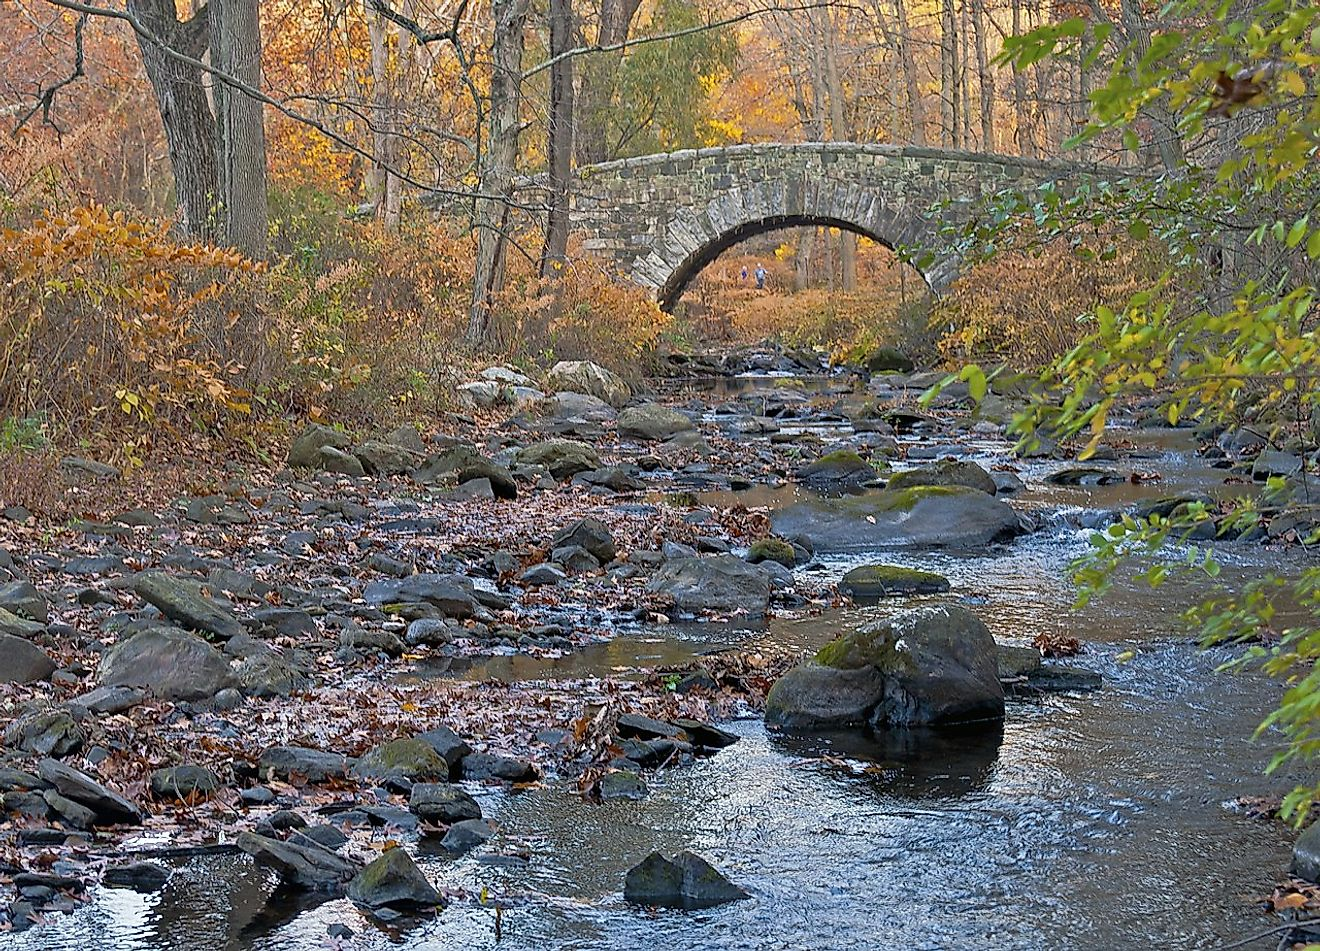 Stone arch bridge over the Pocantico River in Rockefeller State Park Preserve, Sleepy Hollow, NY, USA. Image credit: Daniel Case/Wikimedia.org